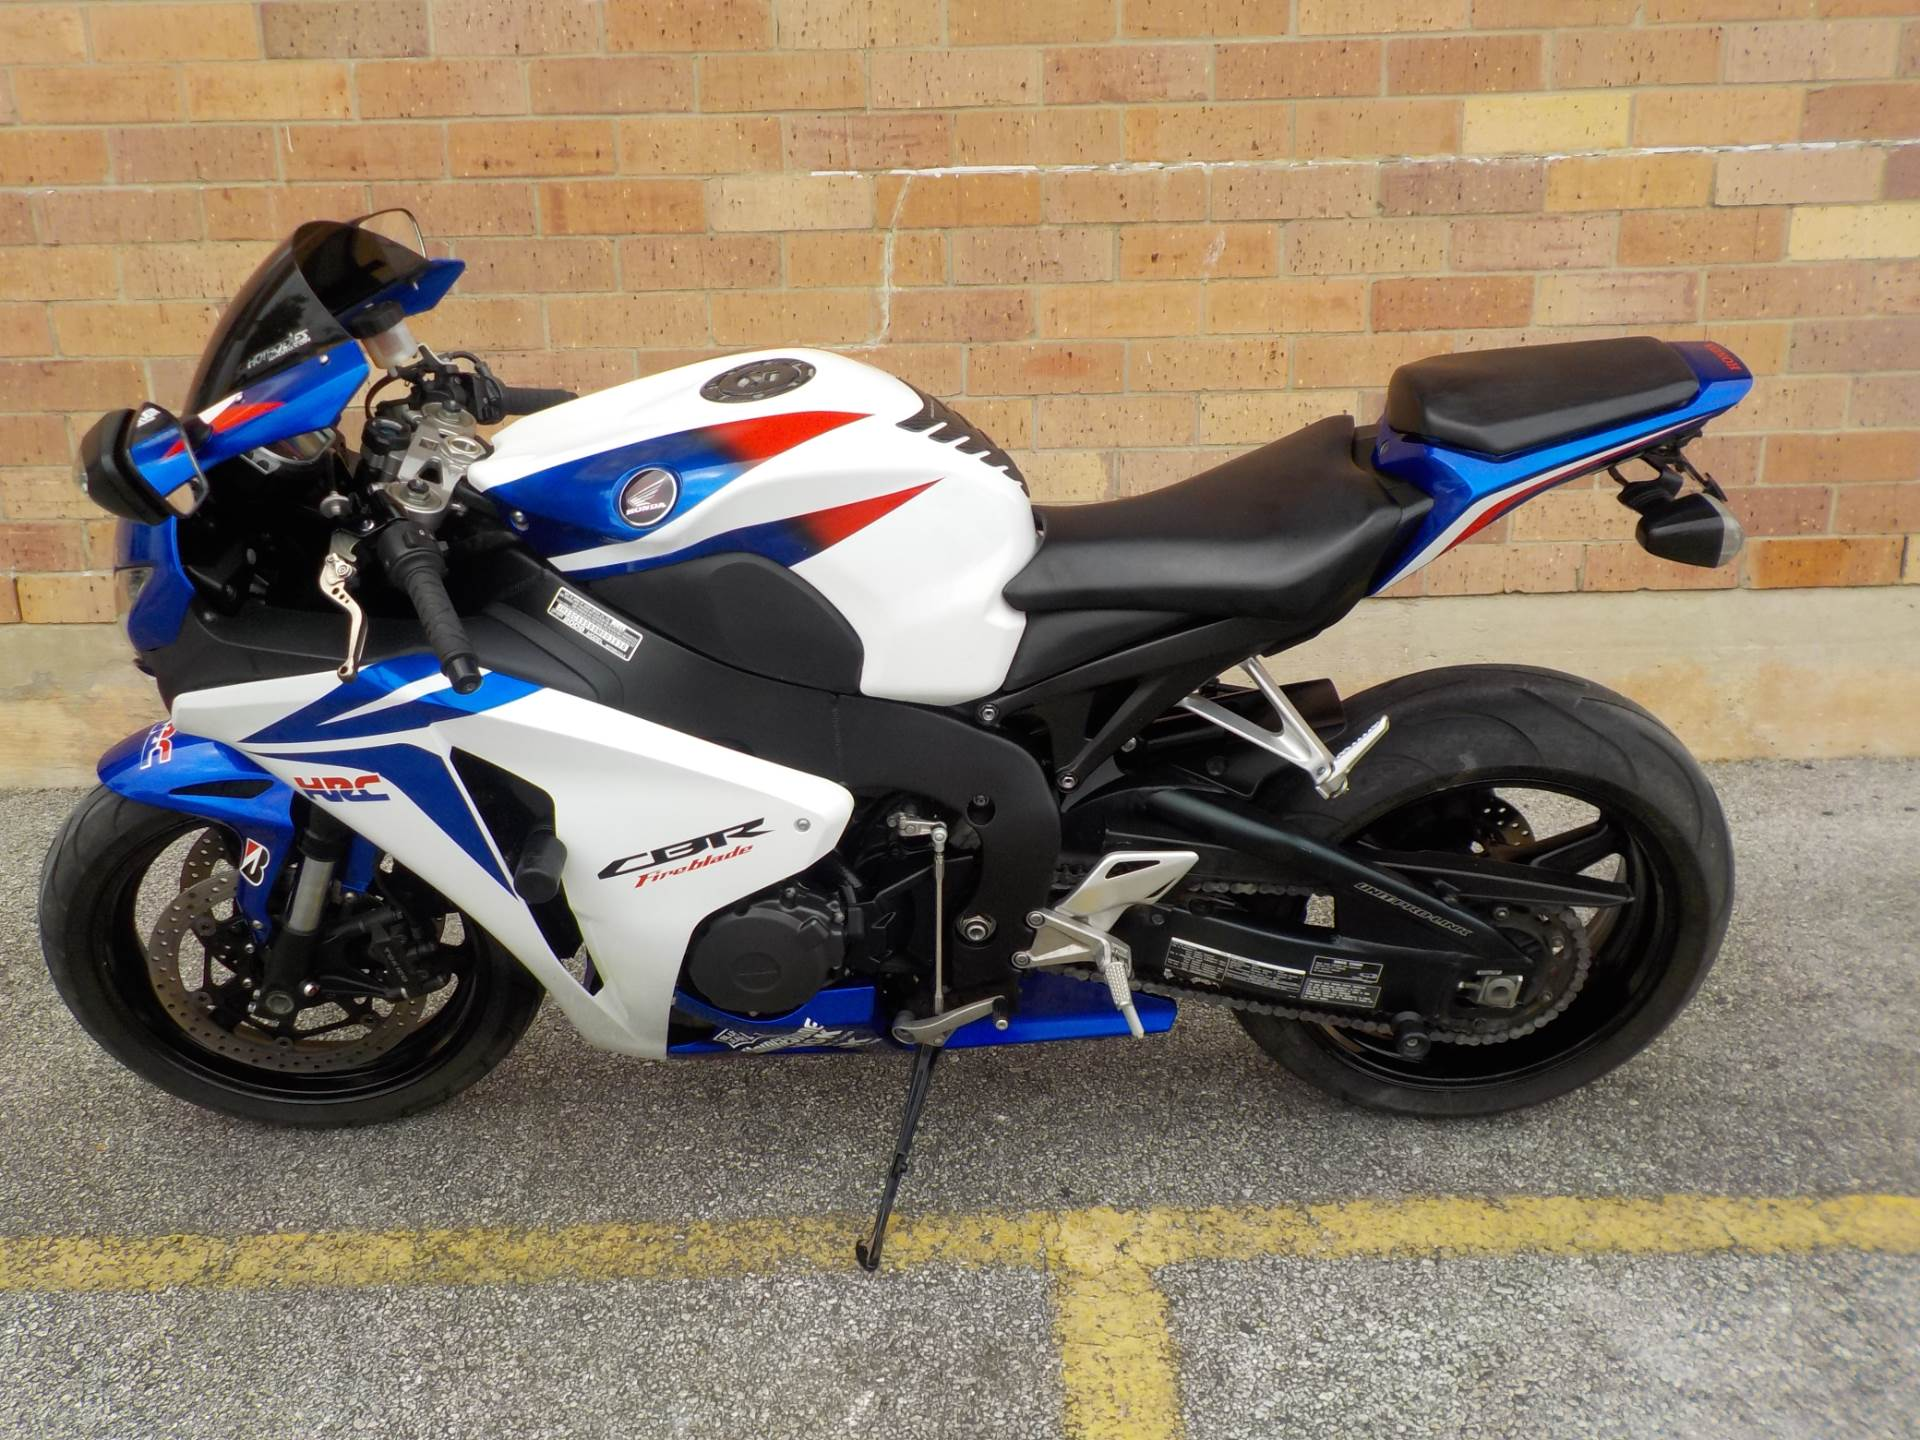 2008 Honda CBR1000RR - Blue and White in San Antonio, Texas